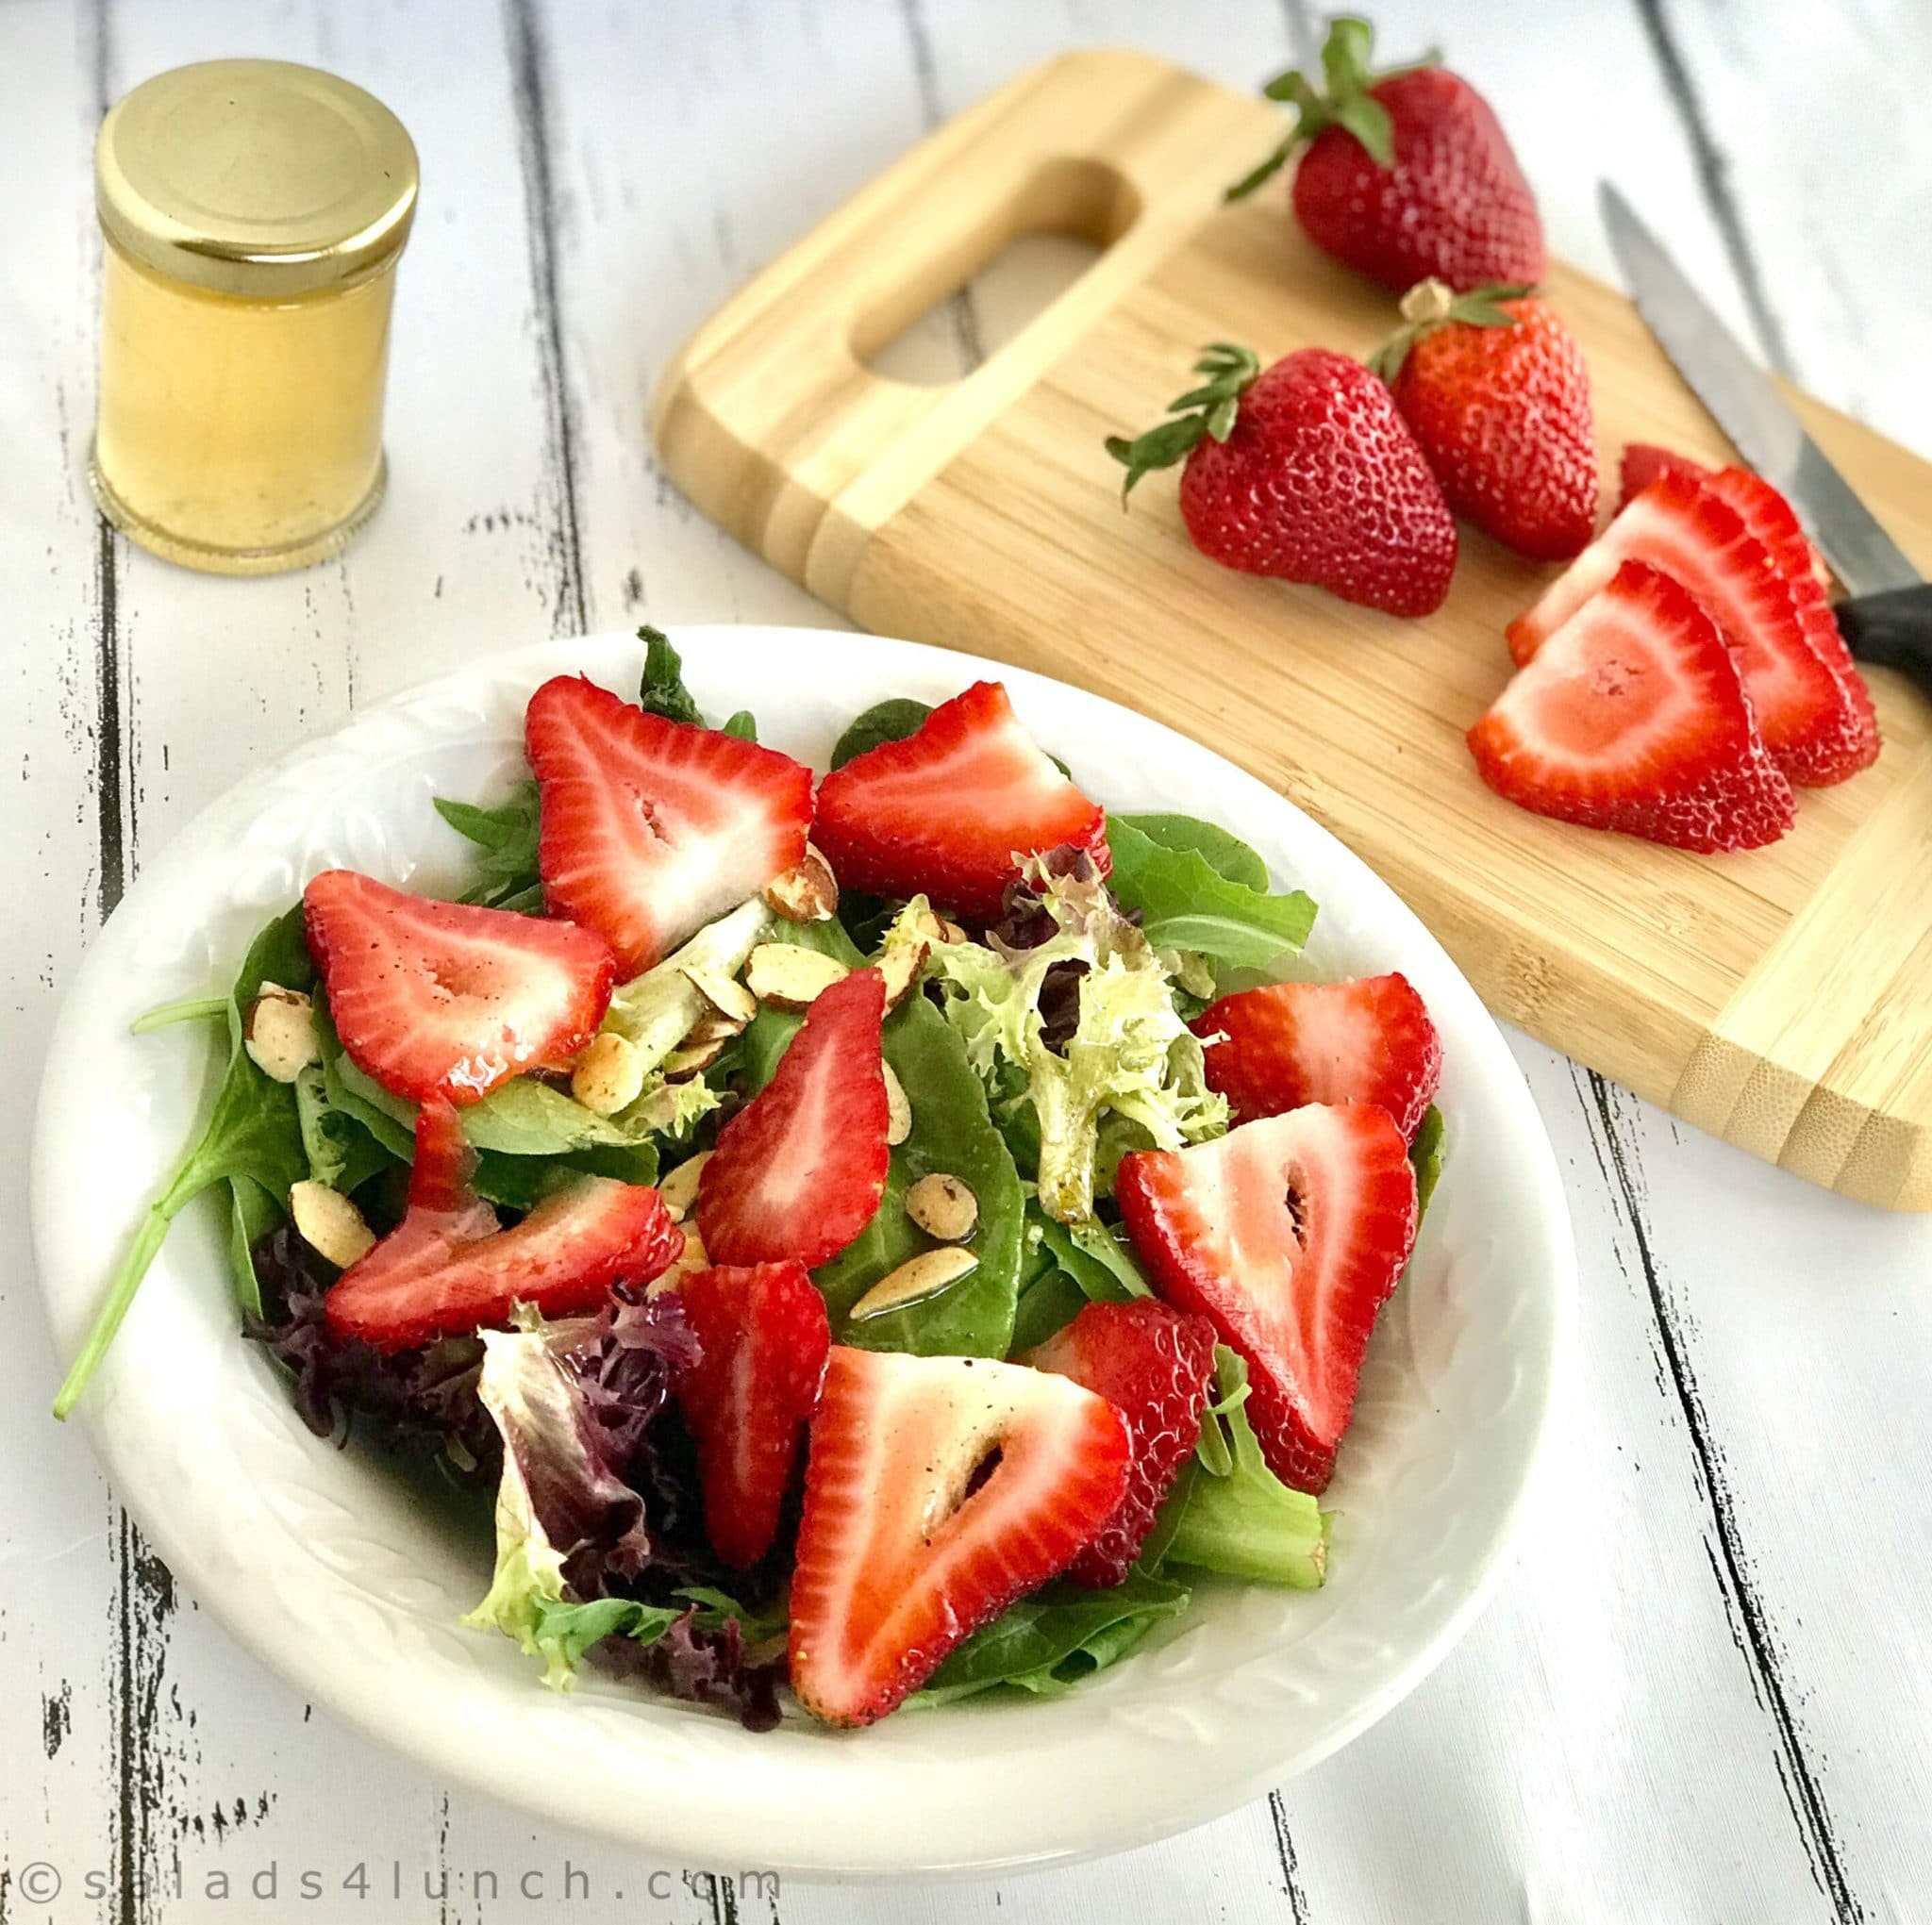 Honey Vinaigrette Salad Dressing. An easy formula for this salad dressing that you can customize to your taste buds. Tangy, sweet, and delicious! #summersalad #saladdressing #strawberrysalad #honeyvinagrette #healthysalad